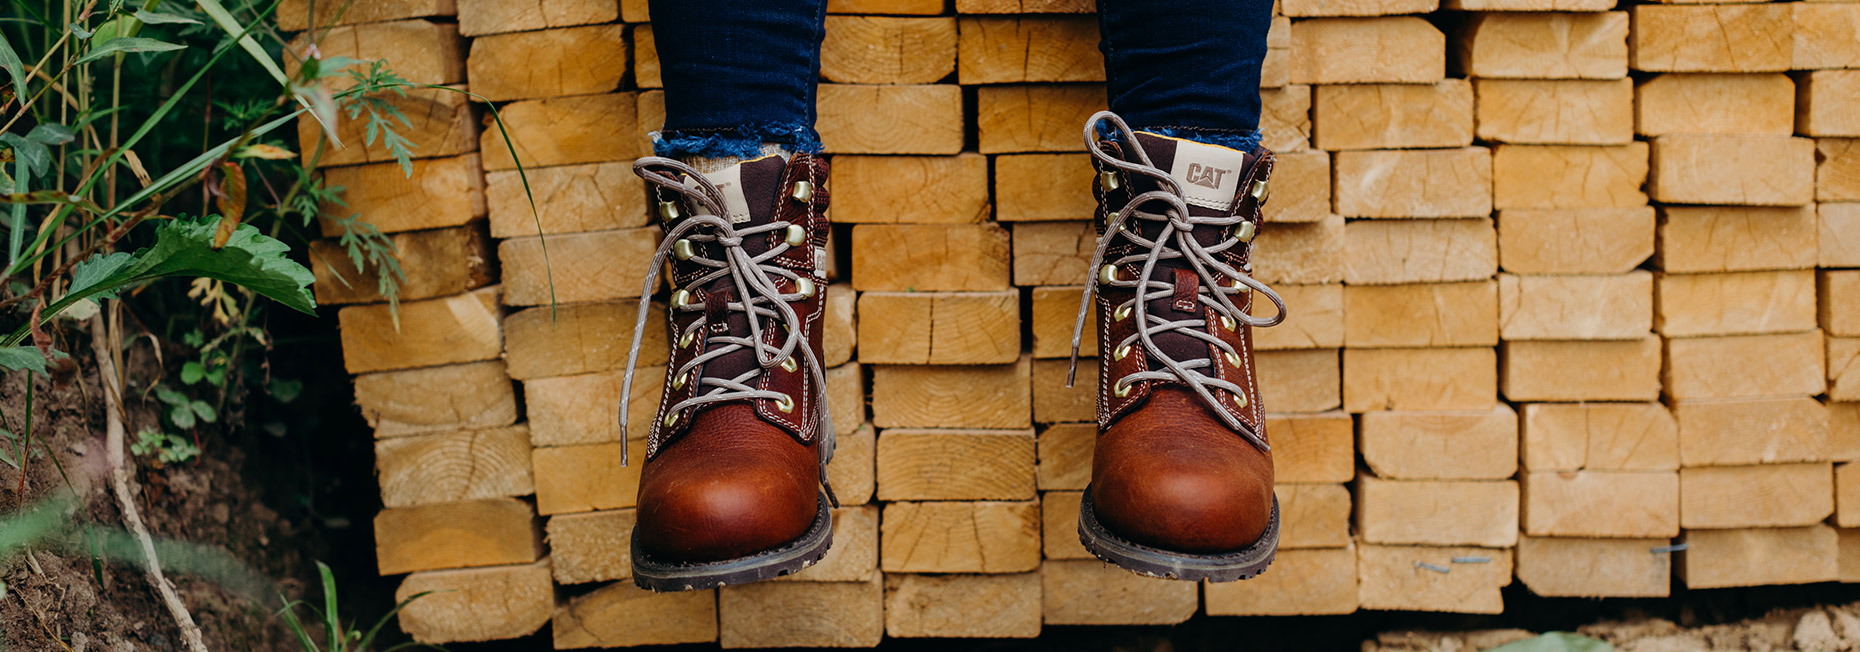 Feet, in leather work boots, dangling in front of a stack of lumber.